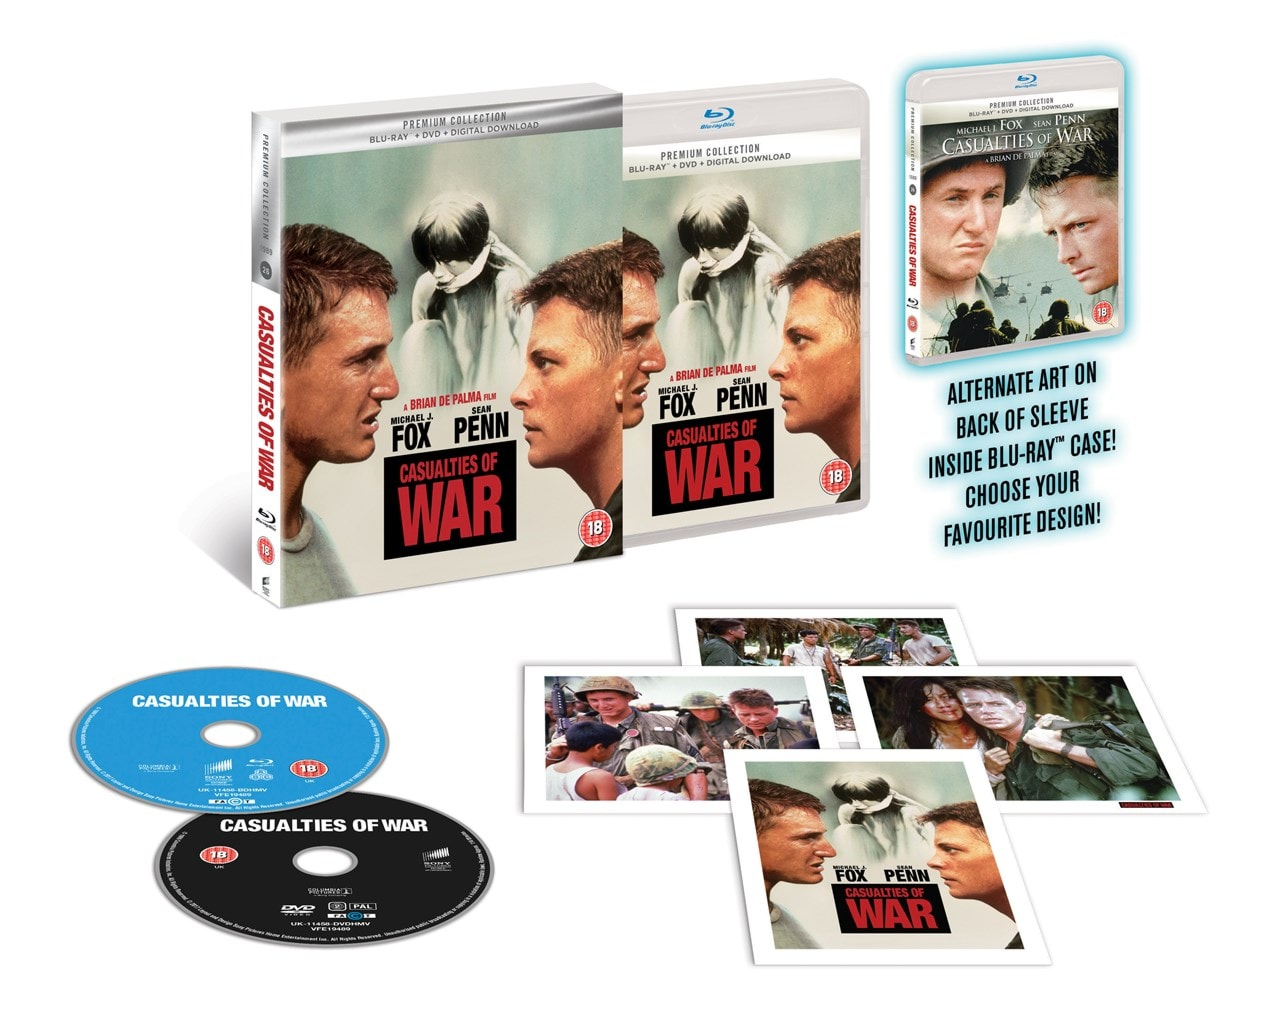 Casualties of War (hmv Exclusive) - The Premium Collection - 3